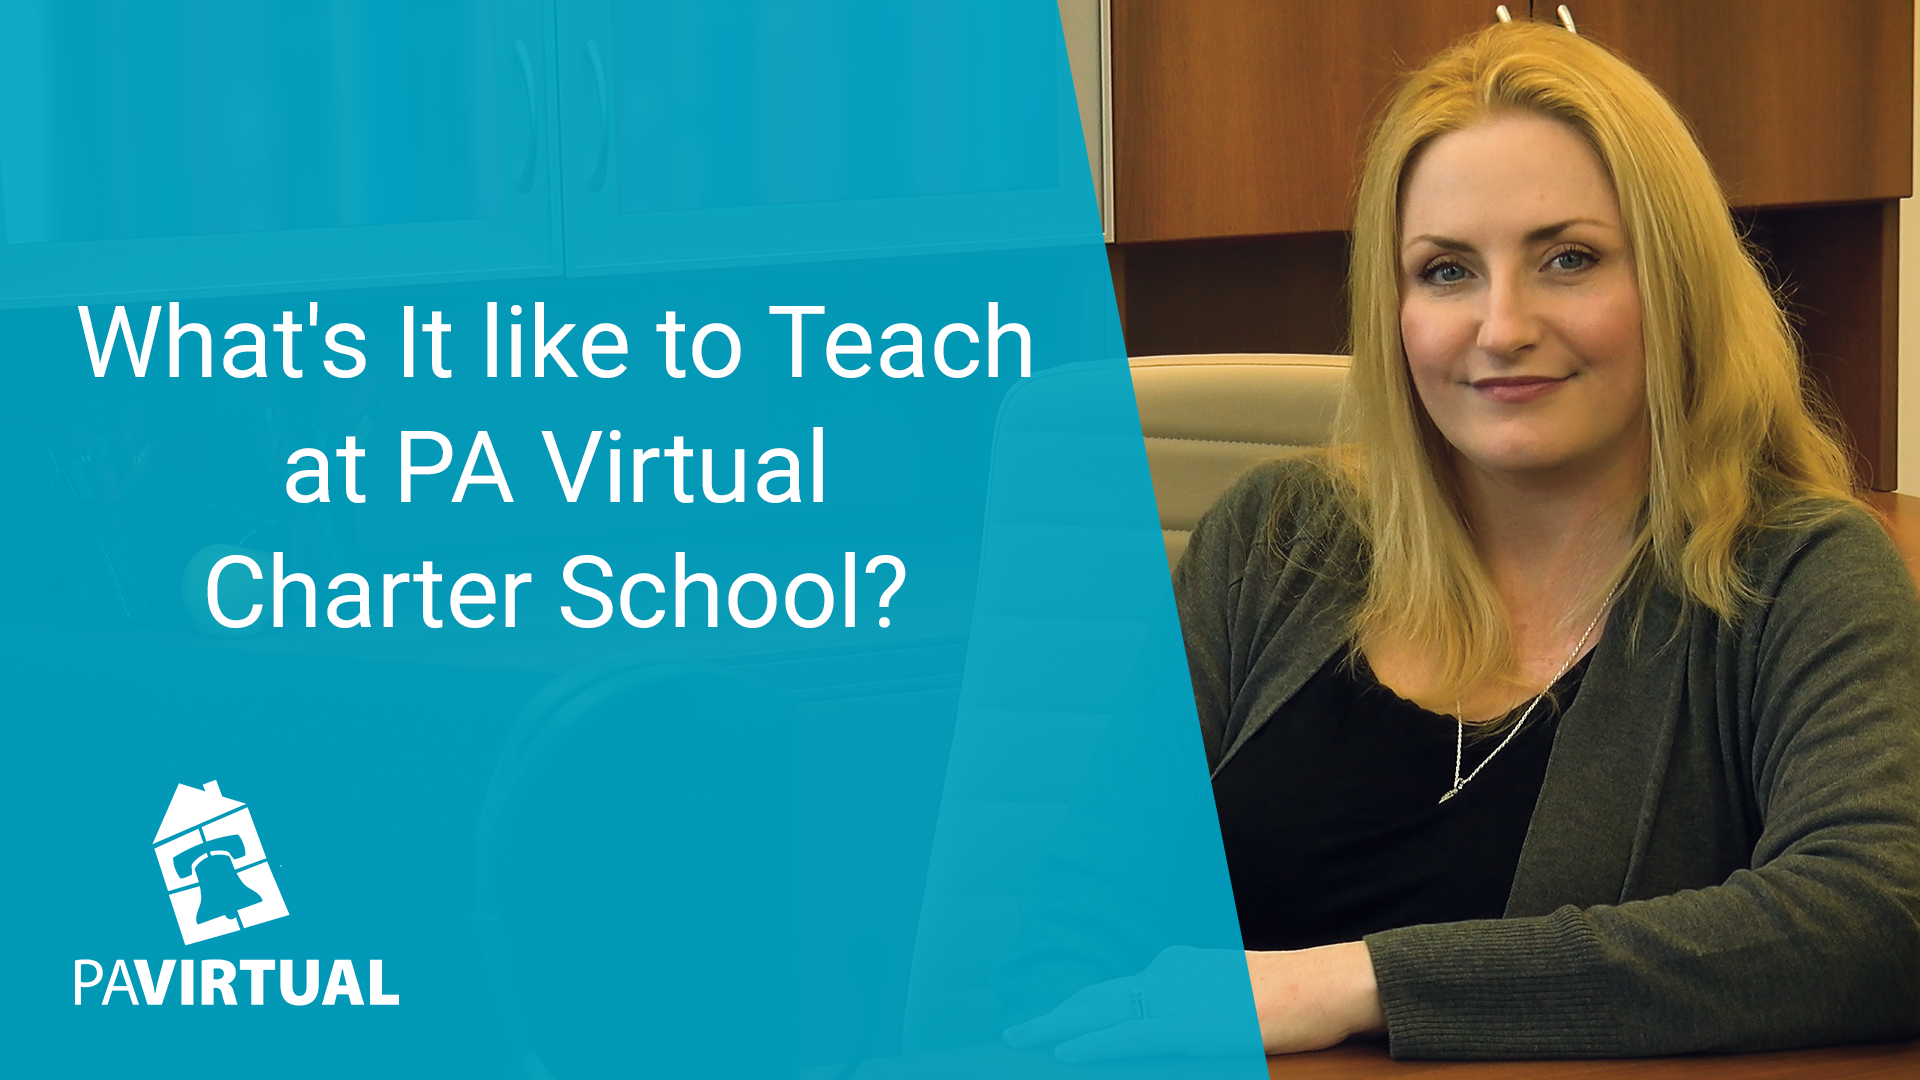 What's It Like to Teach at PA Virtual Charter School